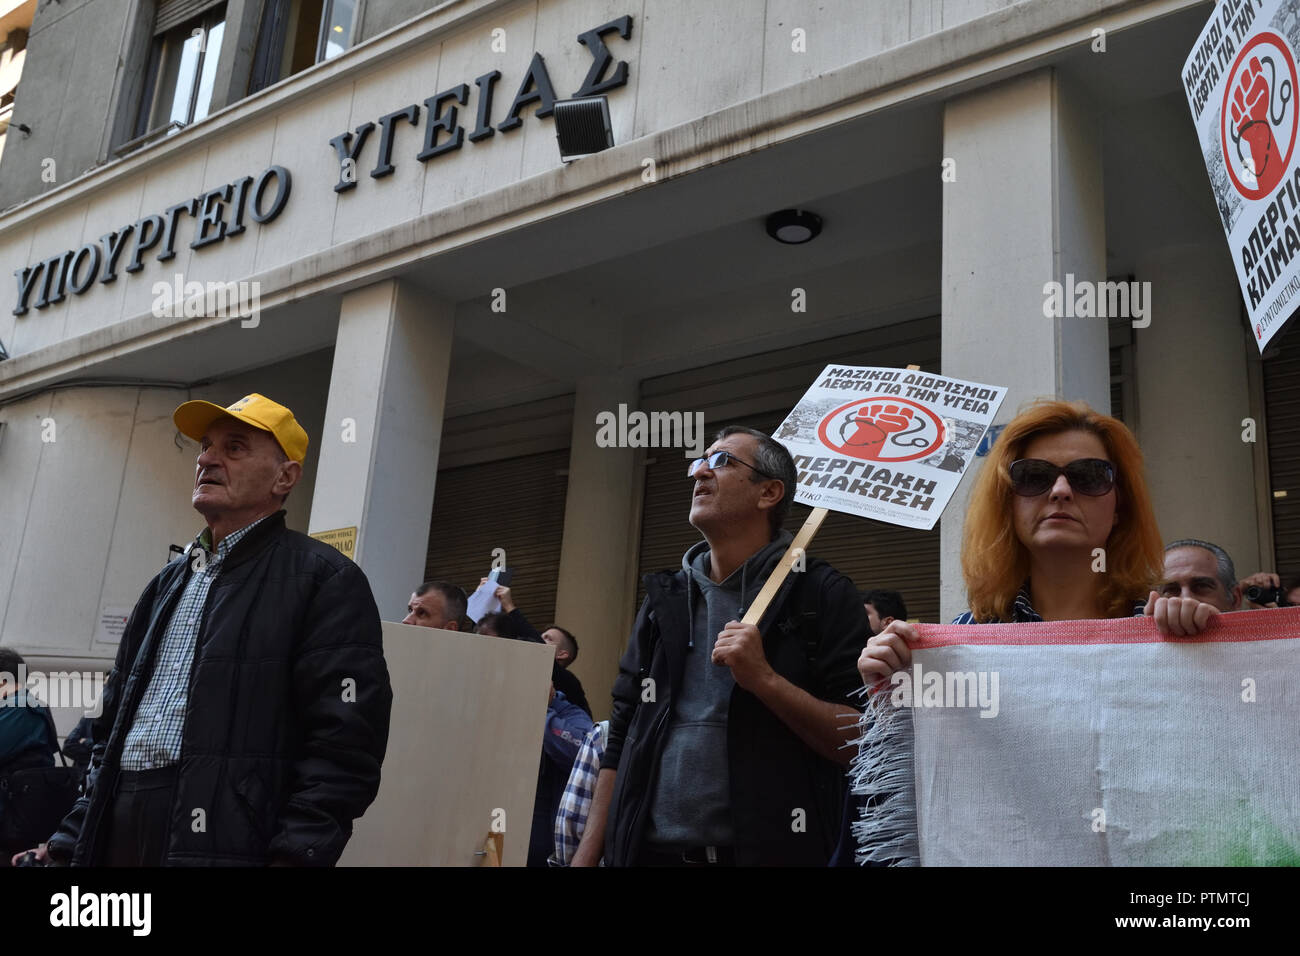 Athens, Greece. 10th Oct, 2018. Public hospital employees protest against cuts in the healthcare system in front of the Ministry of Health in Athens, Greece. Credit: Nicolas Koutsokostas/Alamy Live News - Stock Image